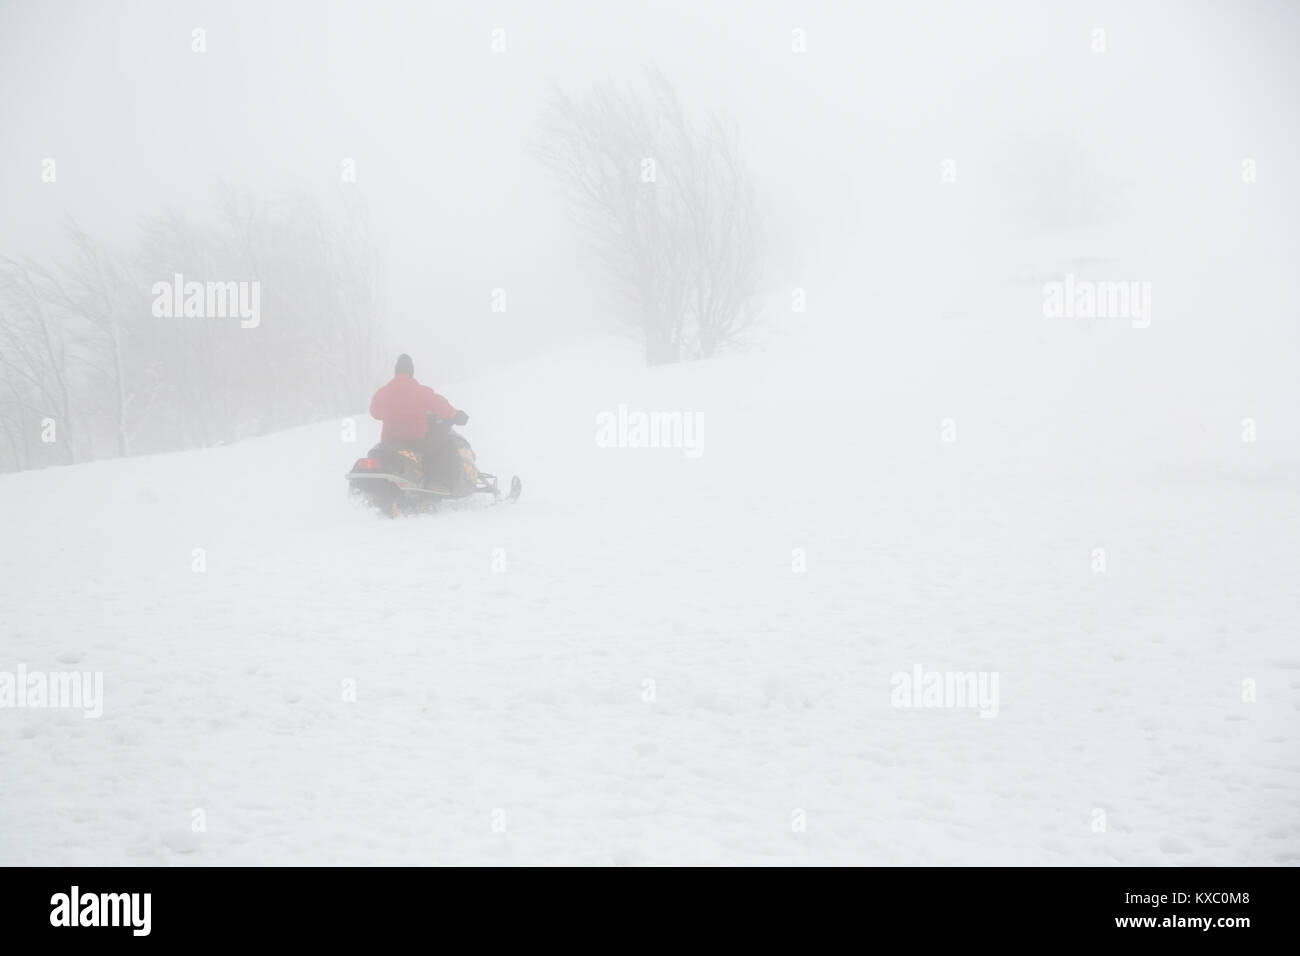 Snowmobile rider goes uphill in foggy weather. - Stock Image